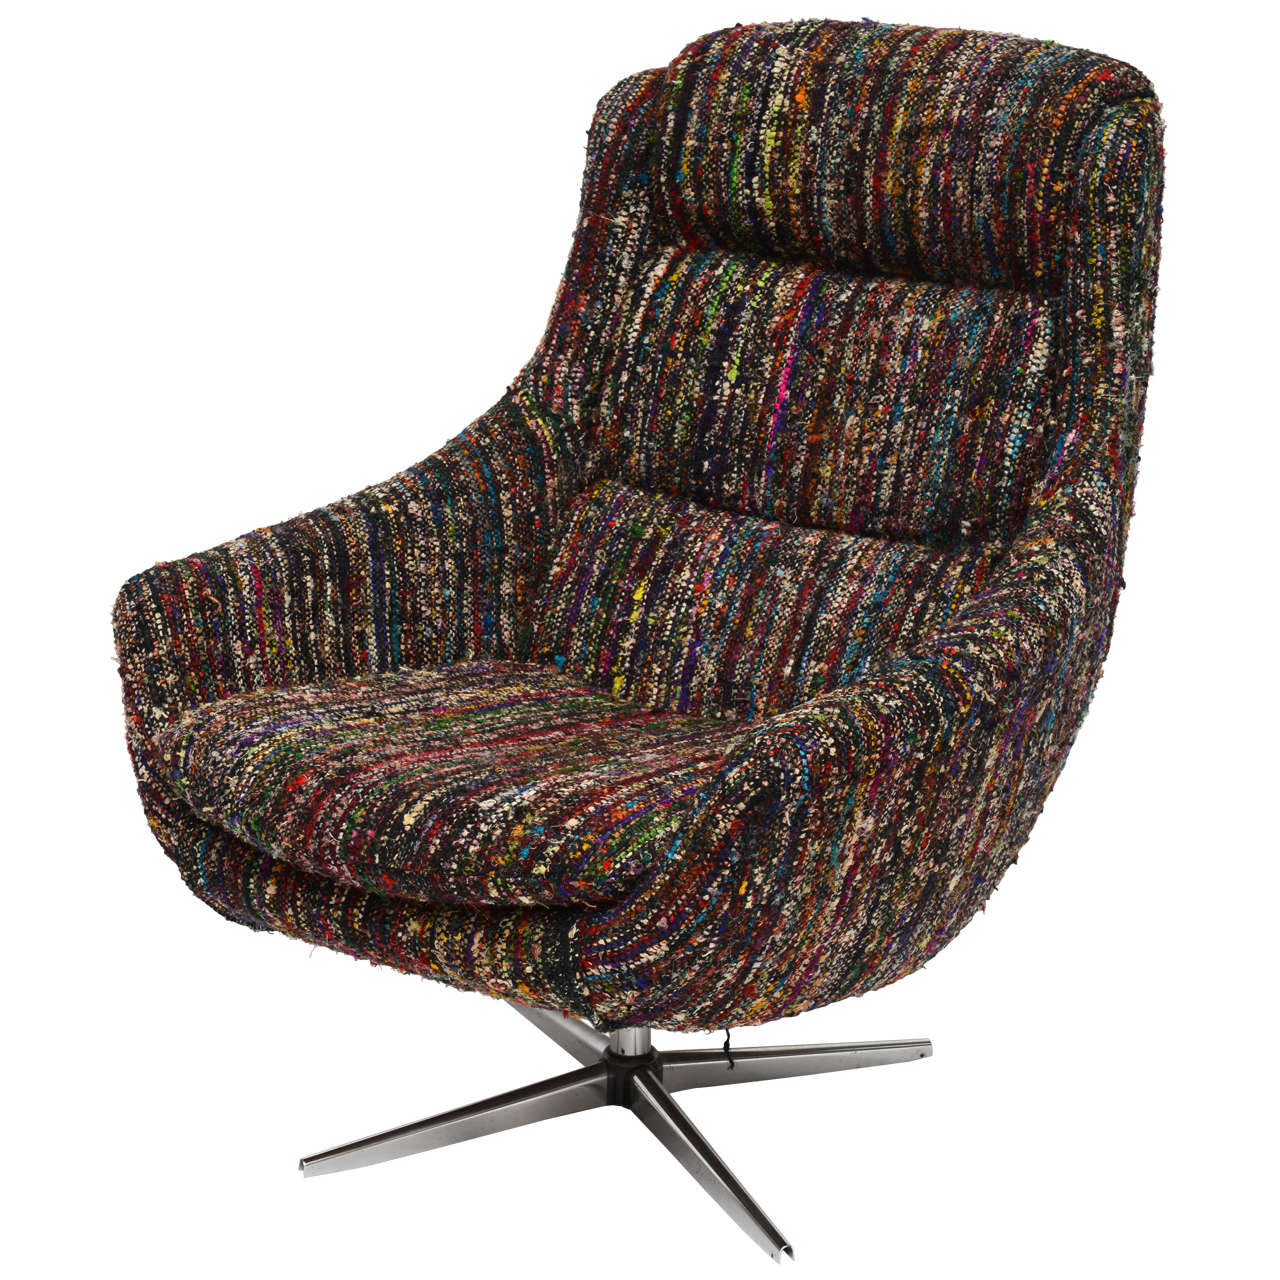 Custom Mcm Chair In Vintage Chanel Fabric 1960s At 1stdibs